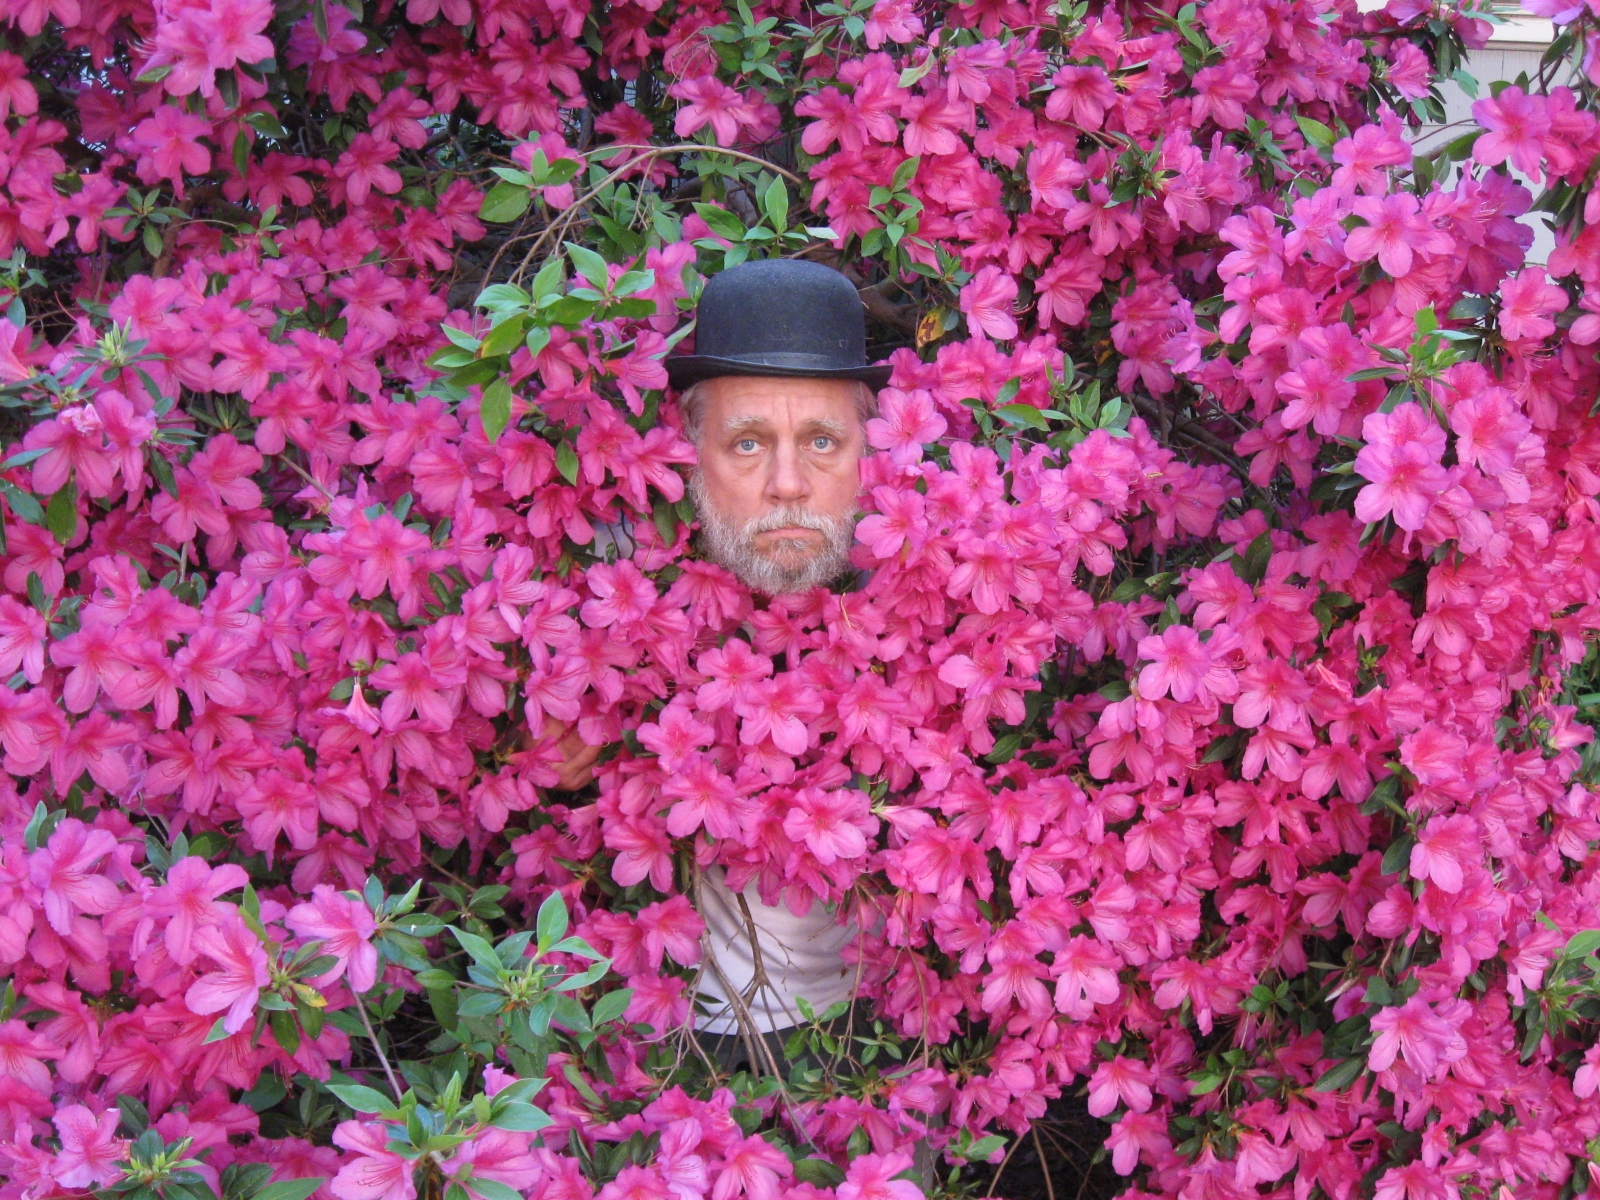 Head in flowers 2.jpg